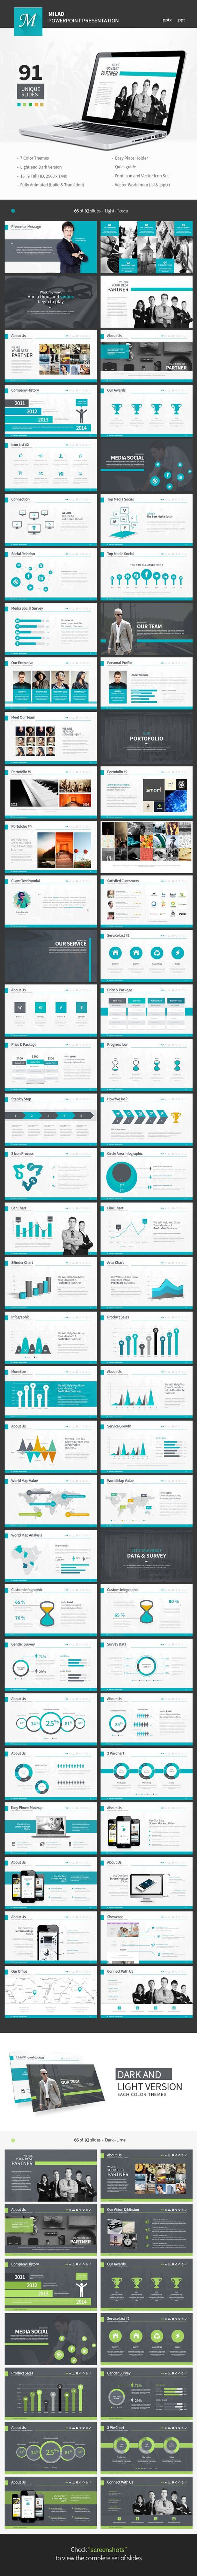 Milad – Powerpoint Presentation (PowerPoint Templates):